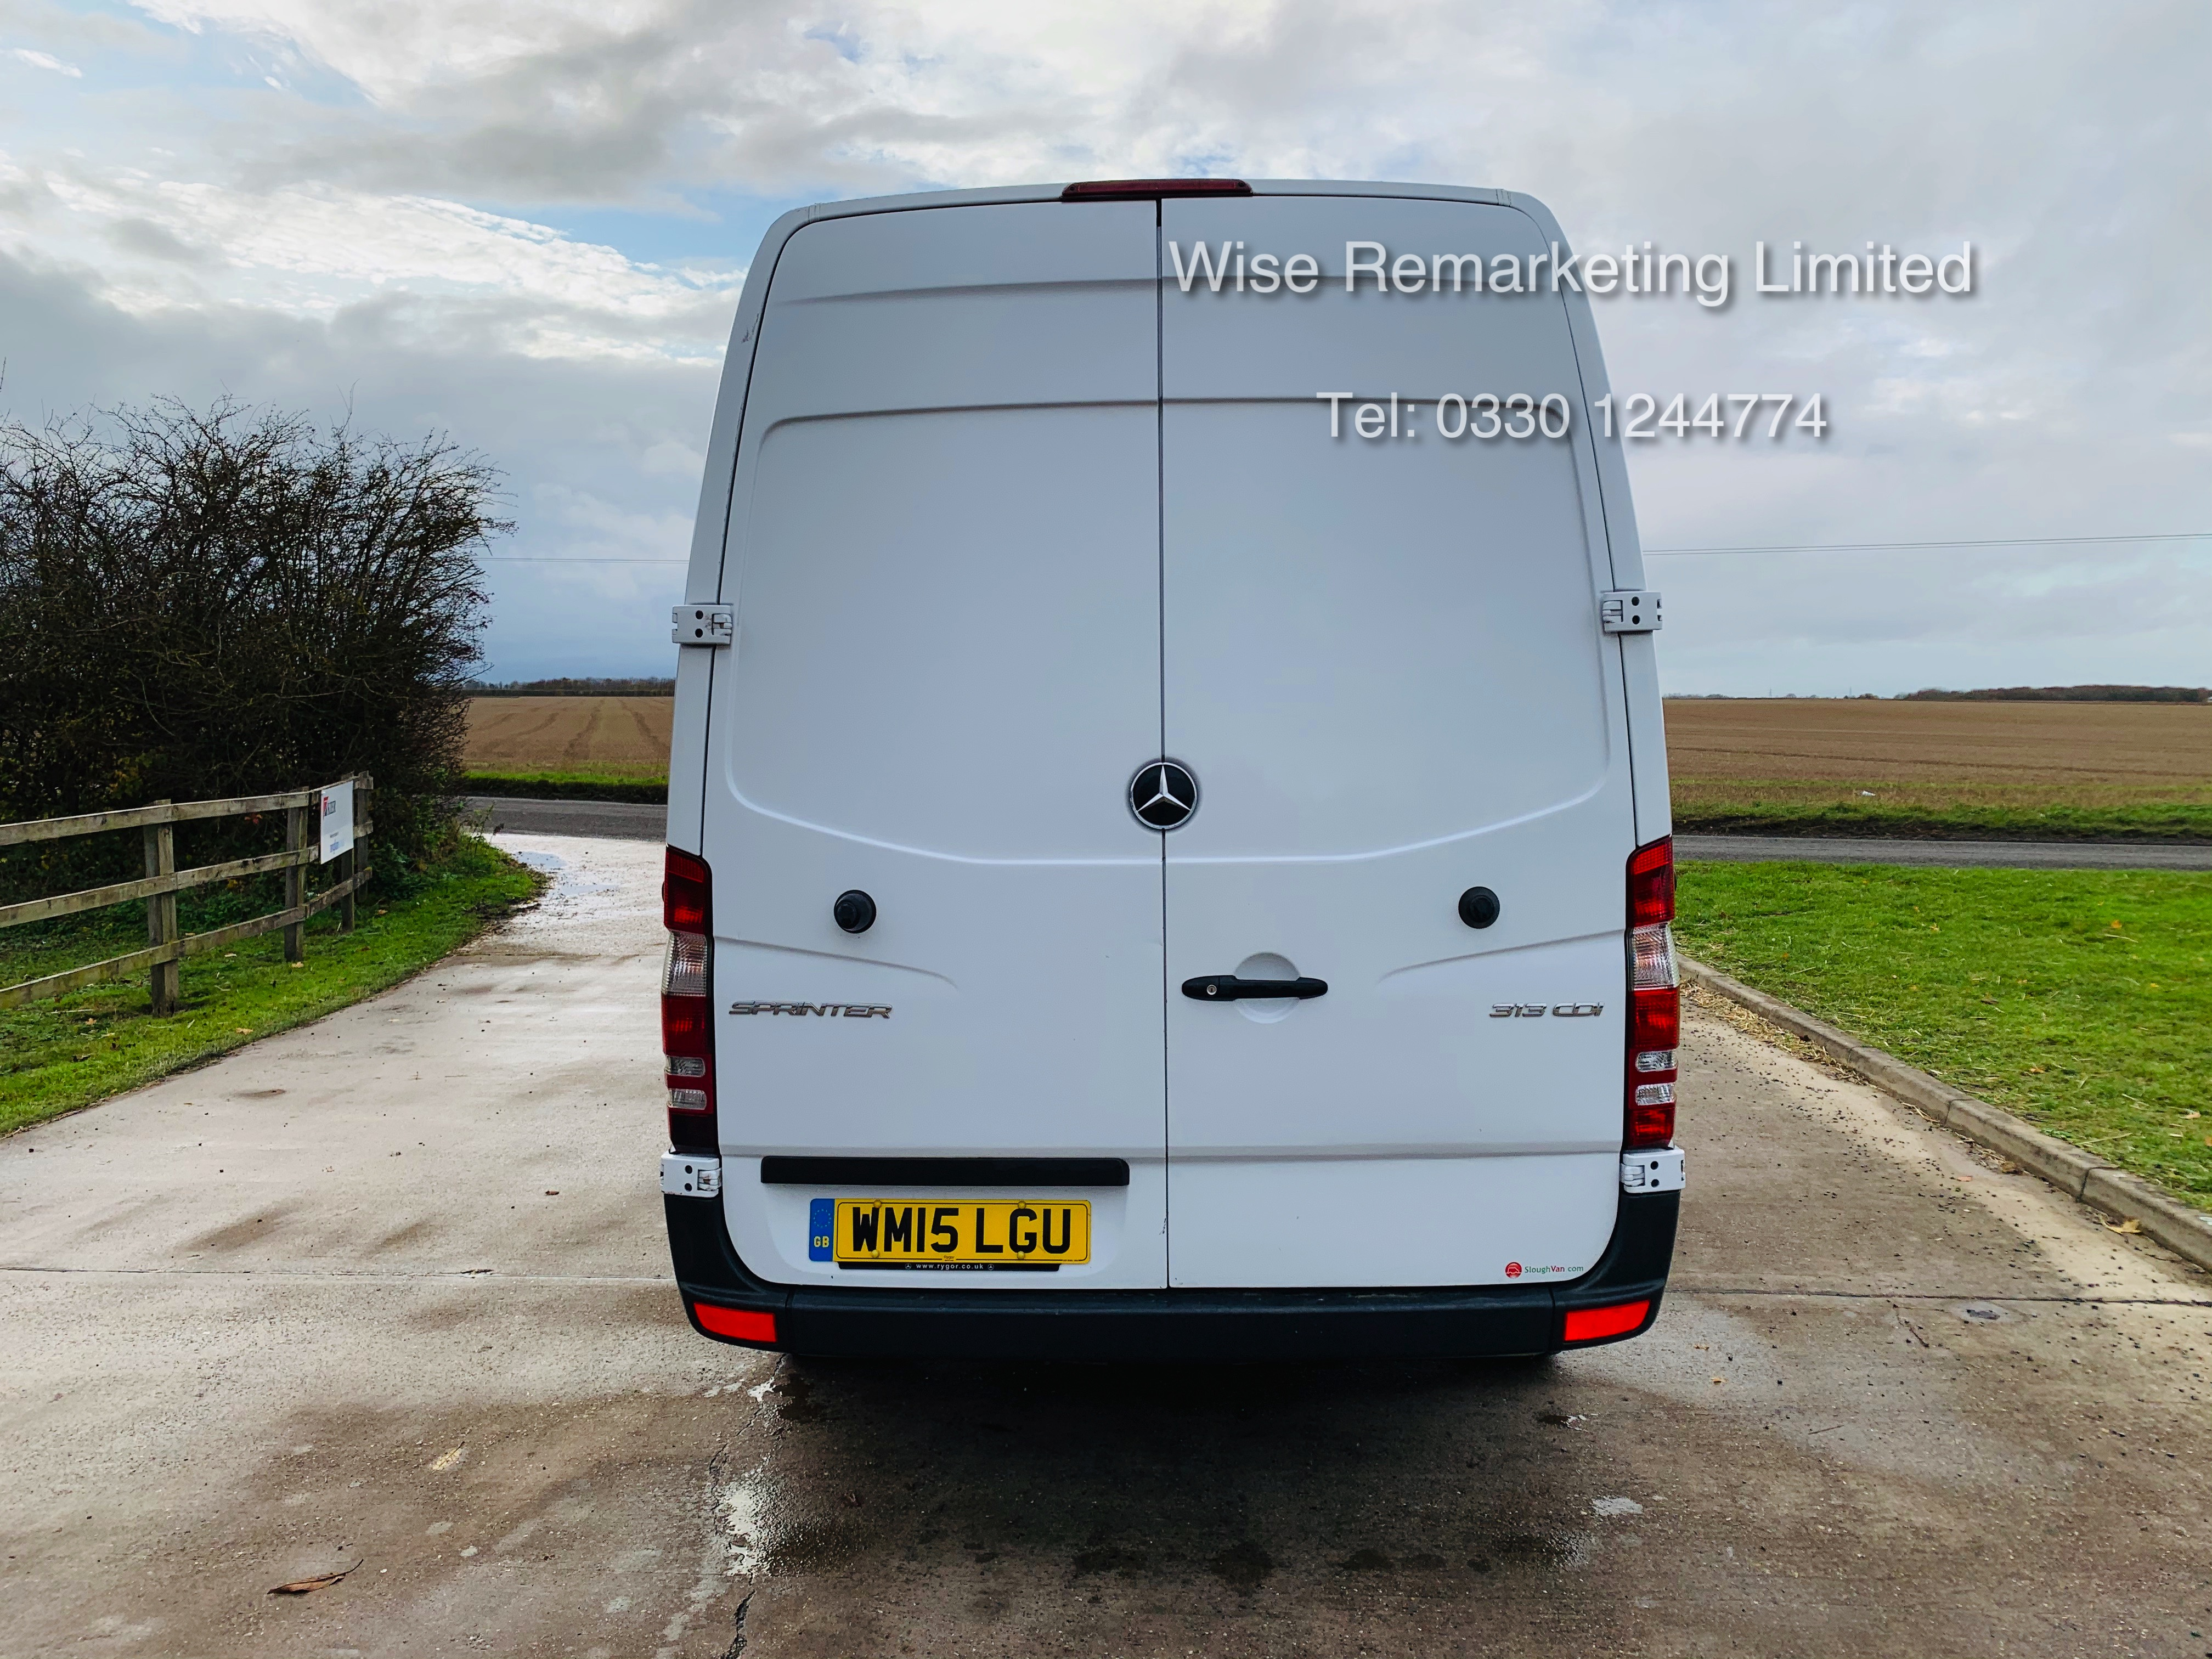 *Reserve Met* Mercedes Sprinter 313 CDI 2.1TD - 2015 15 Reg - Company Maintained - Low Miles - Image 4 of 16